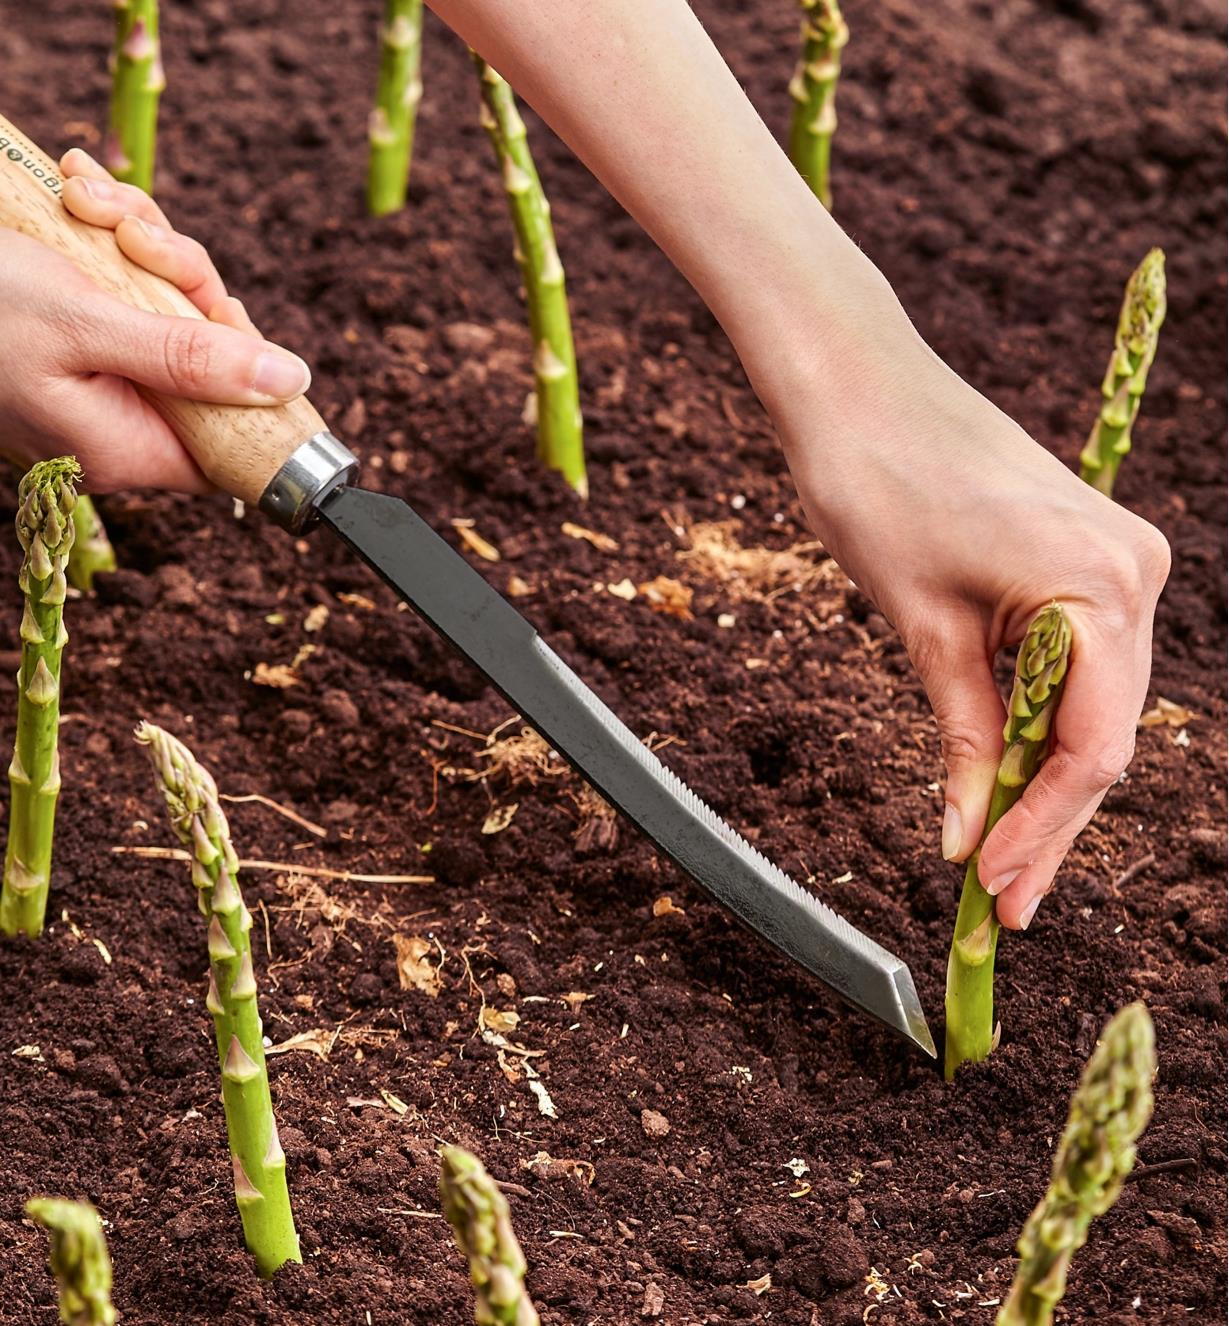 Harvesting asparagus with the Asparagus/Harvest Knife